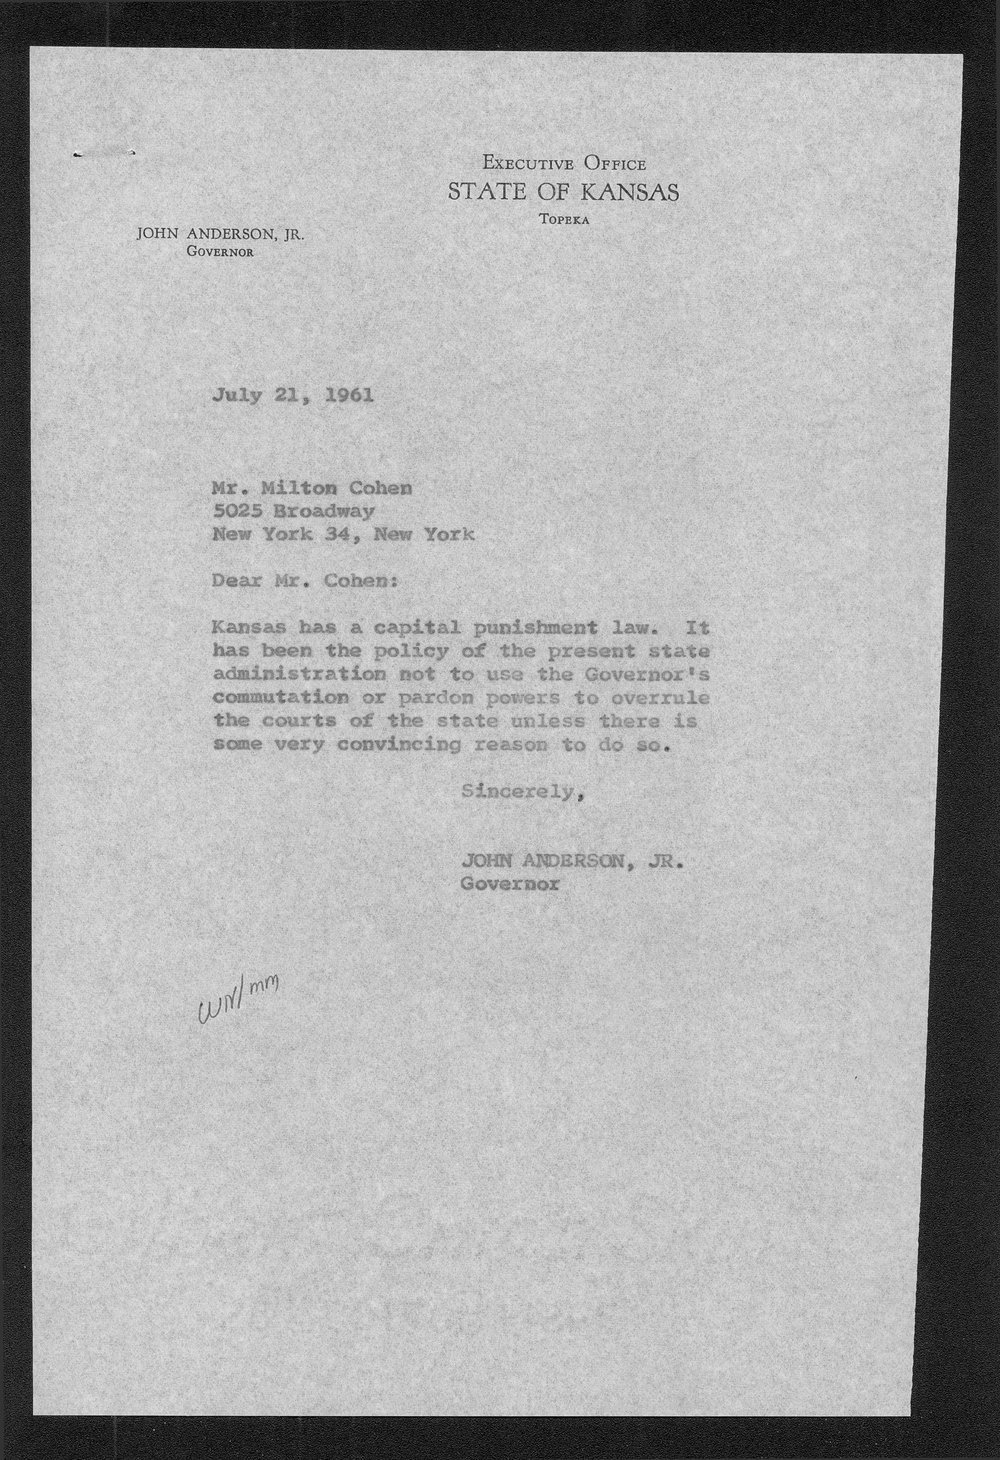 Governor John Anderson capital punishment received correspondence - 1